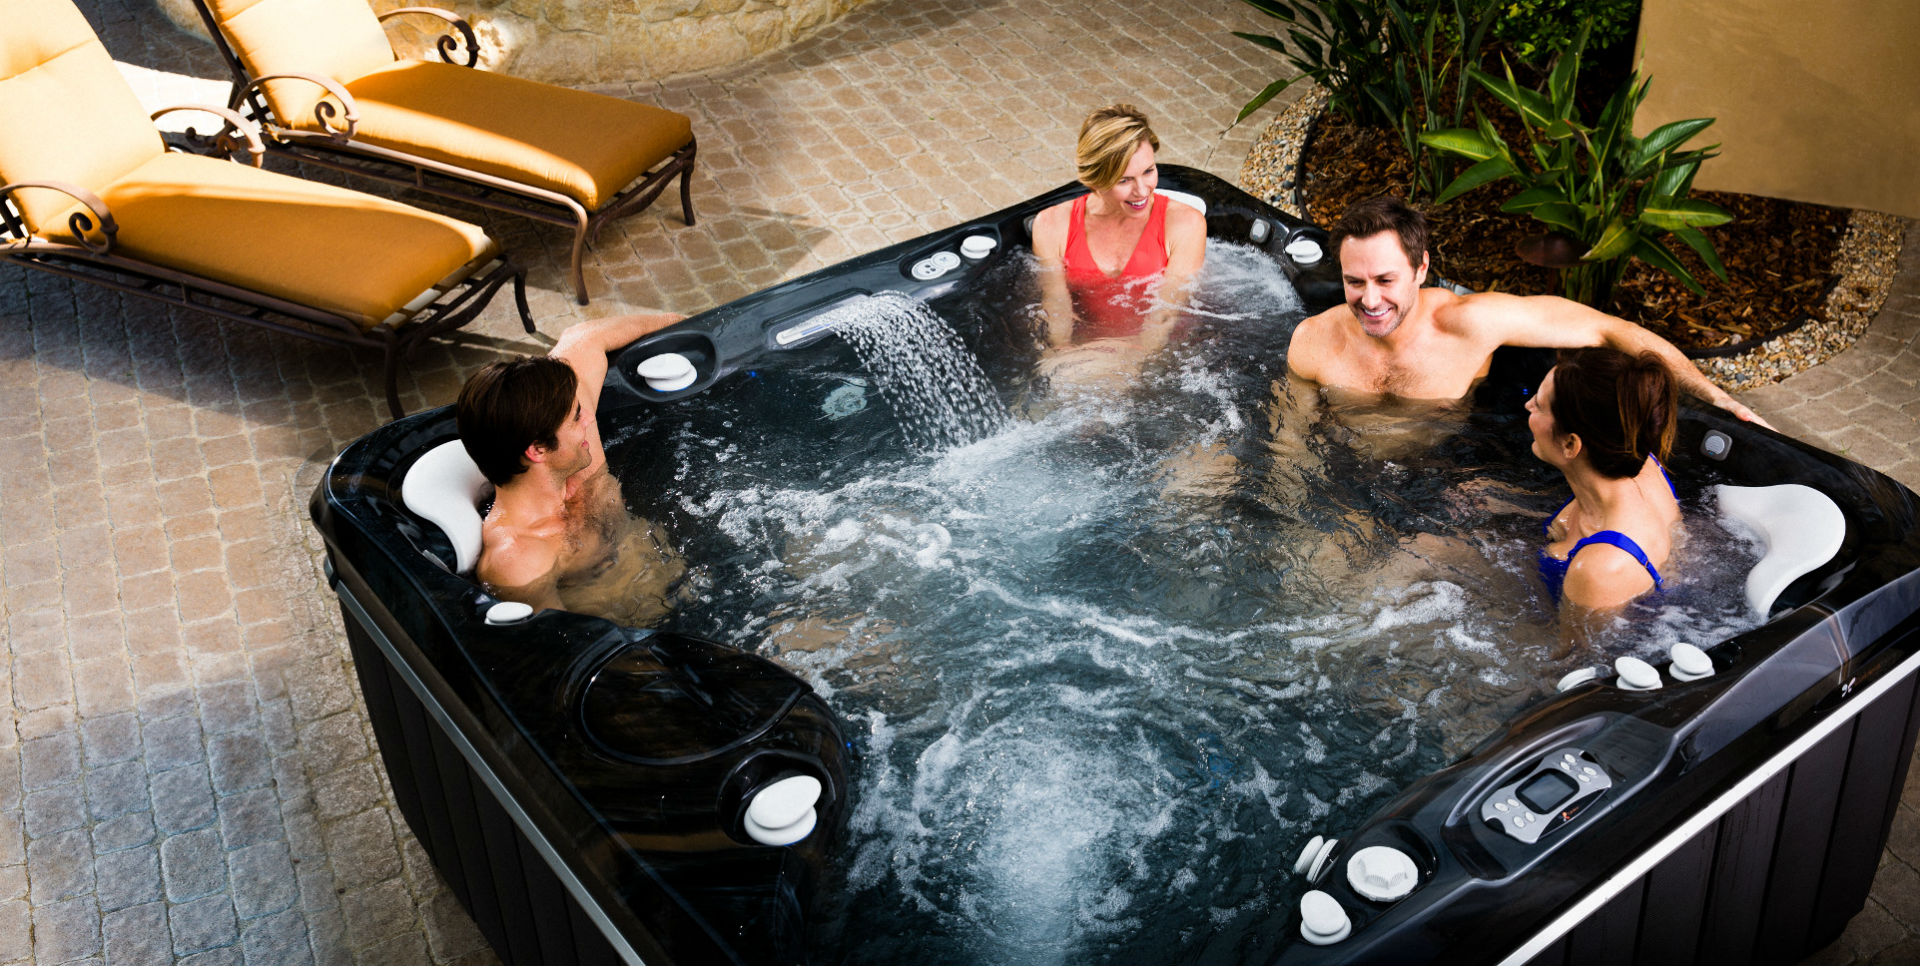 Family fun des moines hot tubs